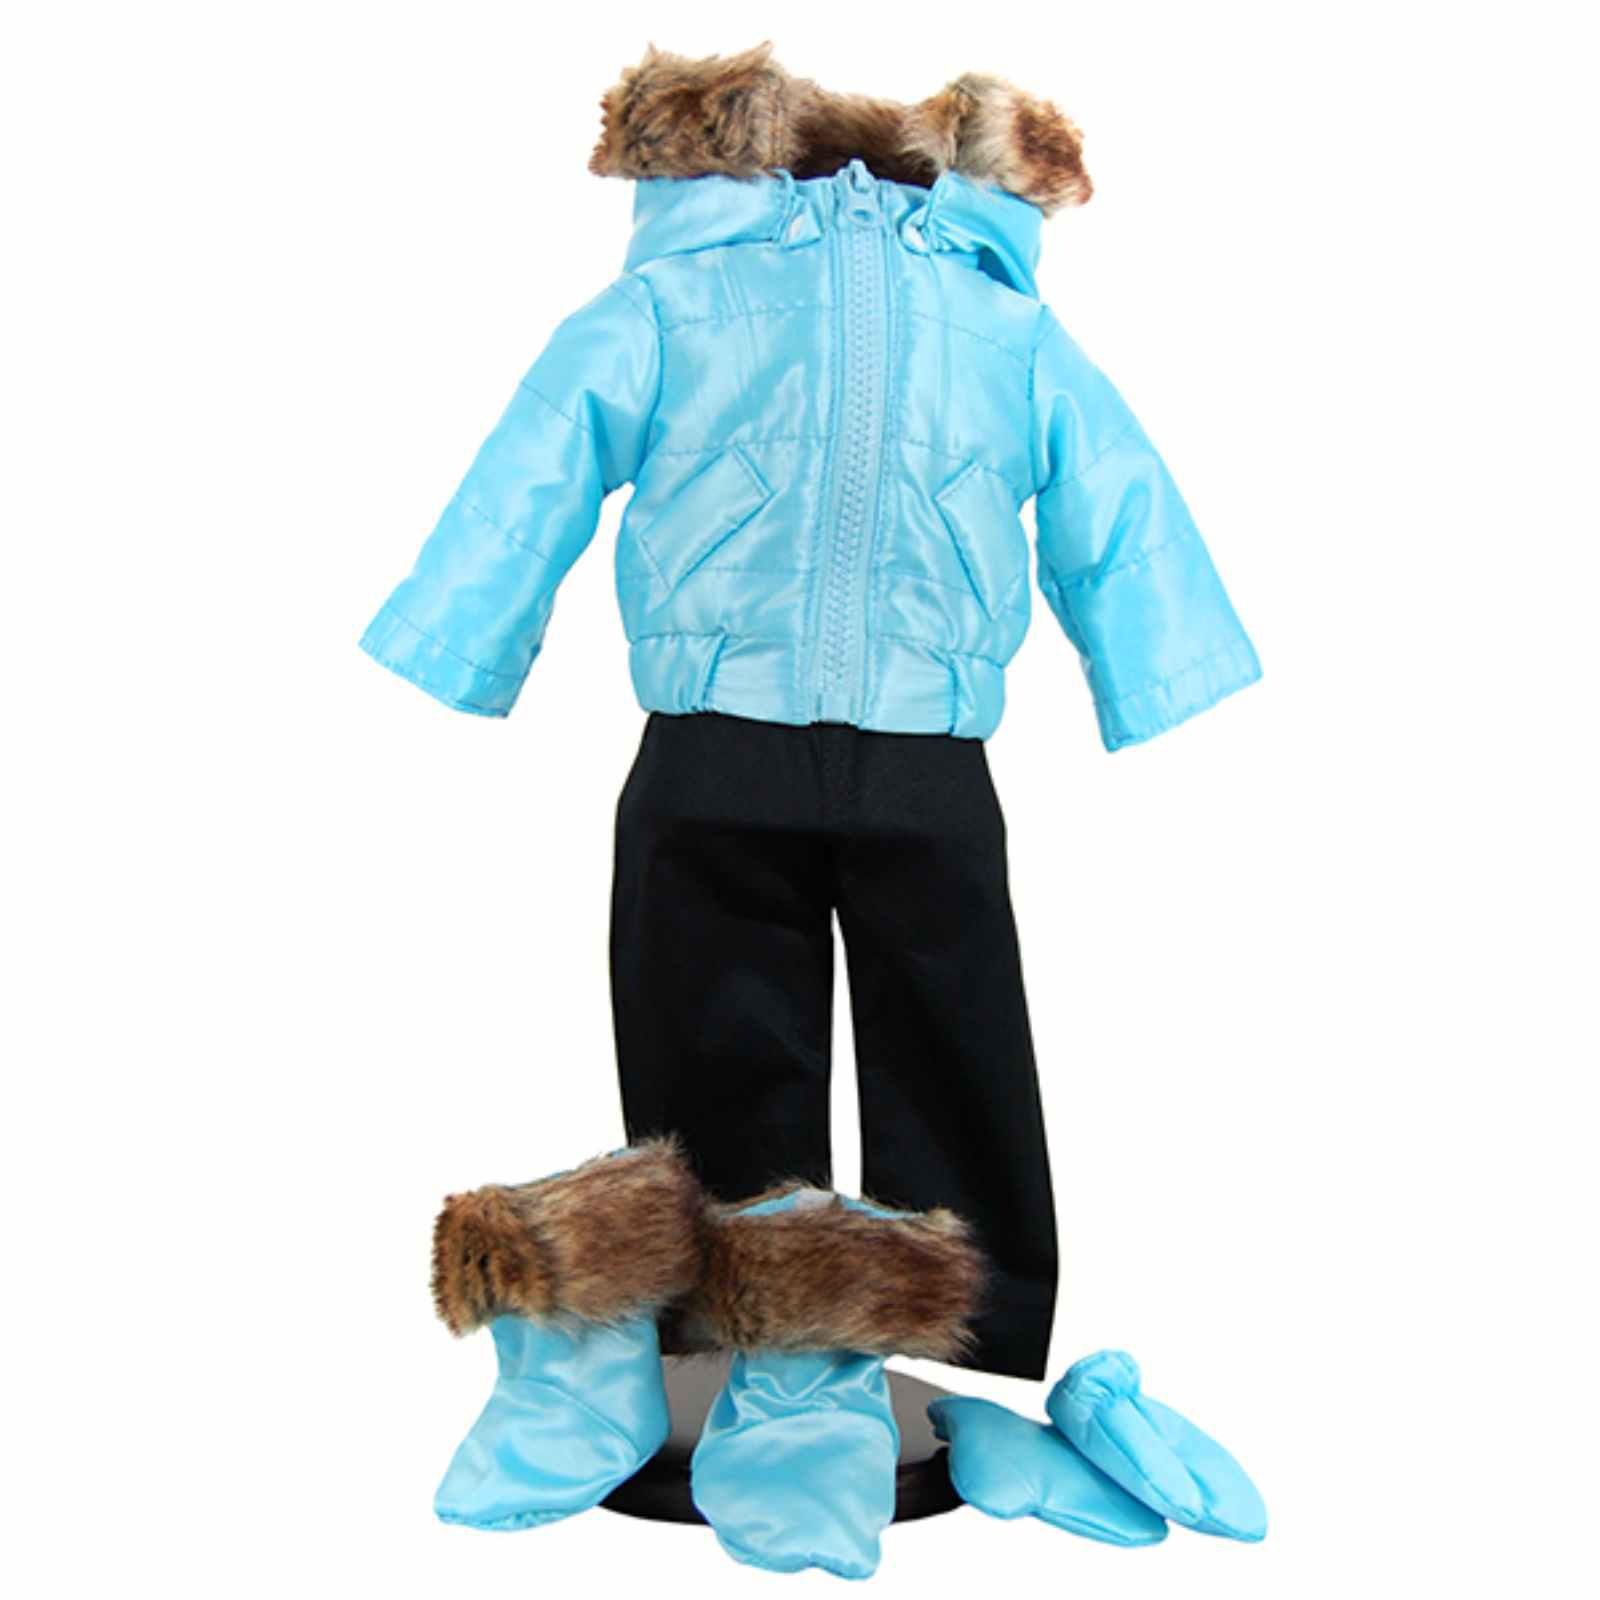 Queen's Treasures Bitty Snow Suit and Boots 15 in. Baby D...